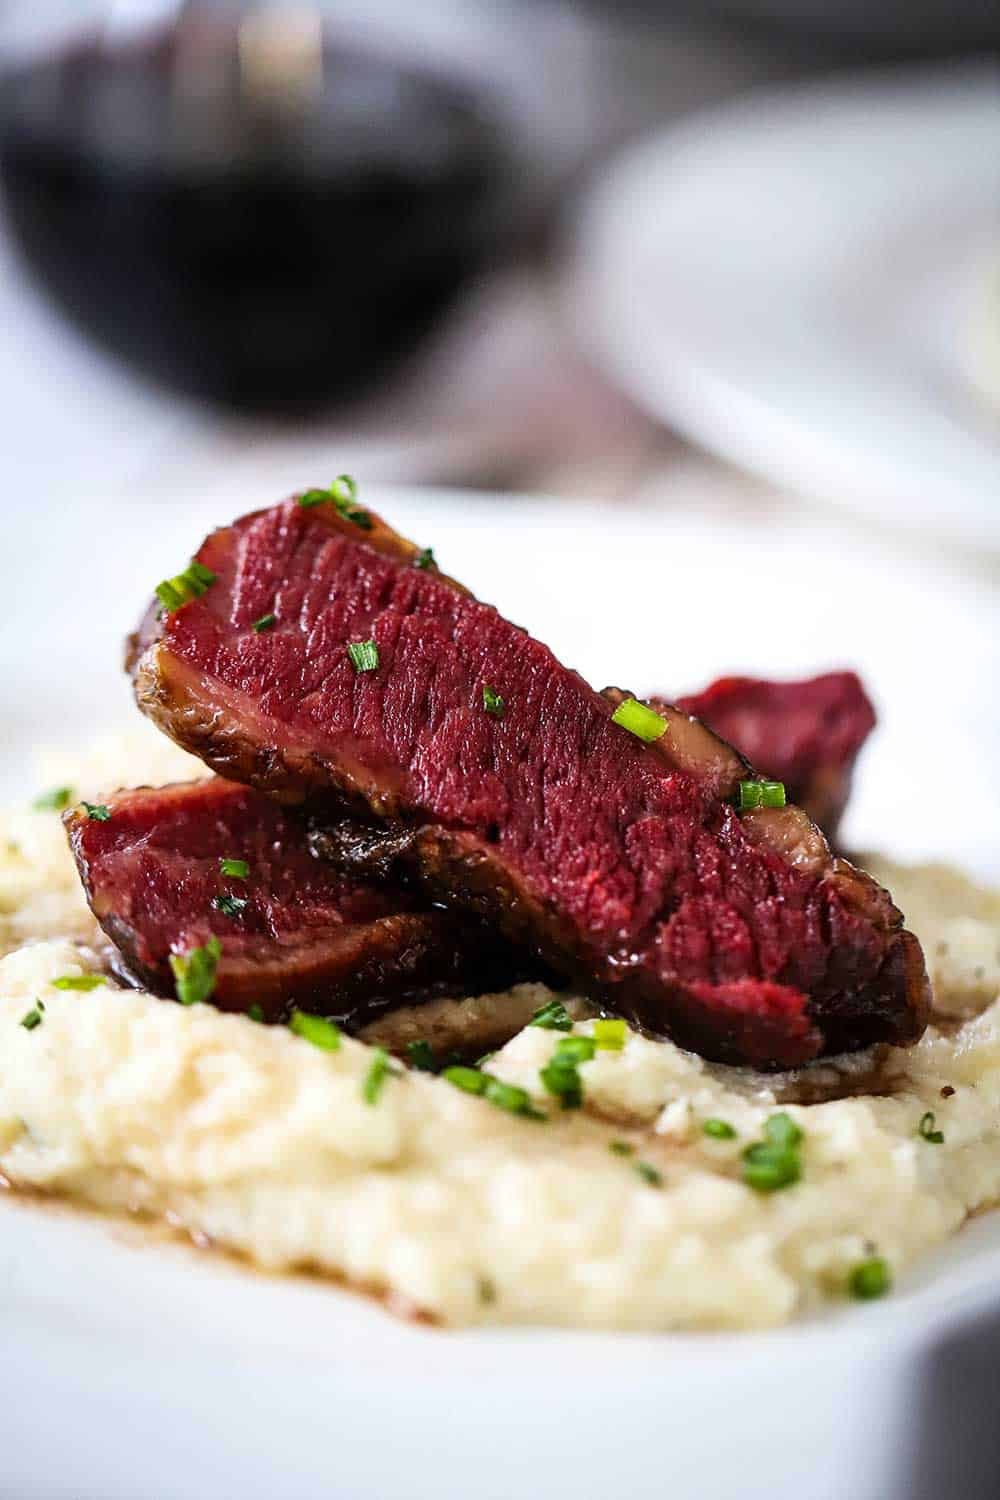 Two slices of Wagyu chuck short ribs that are stacked on top of mashed cauliflower all on a white dinner plate.